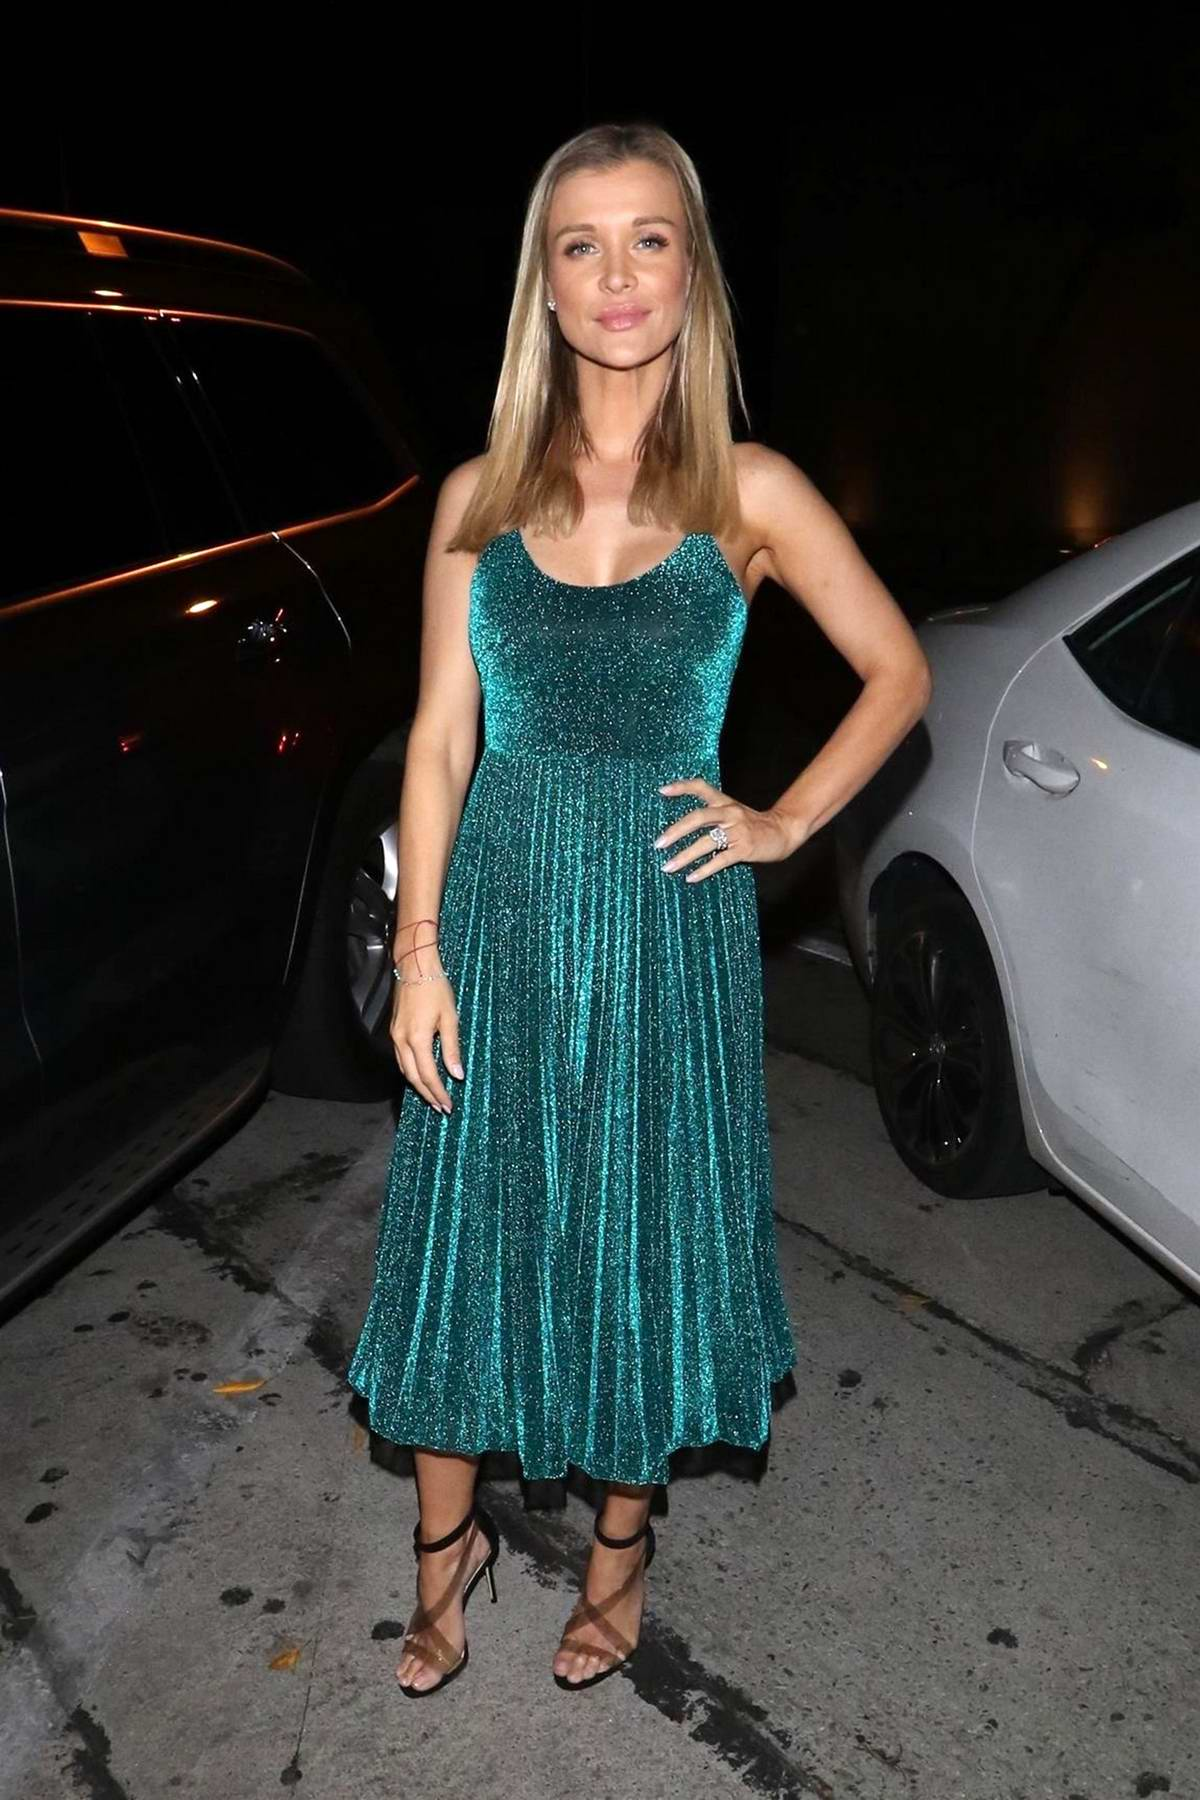 Joanna Krupa stops for photos as she leaves Craig's restaurant in West Hollywood, Los Angeles